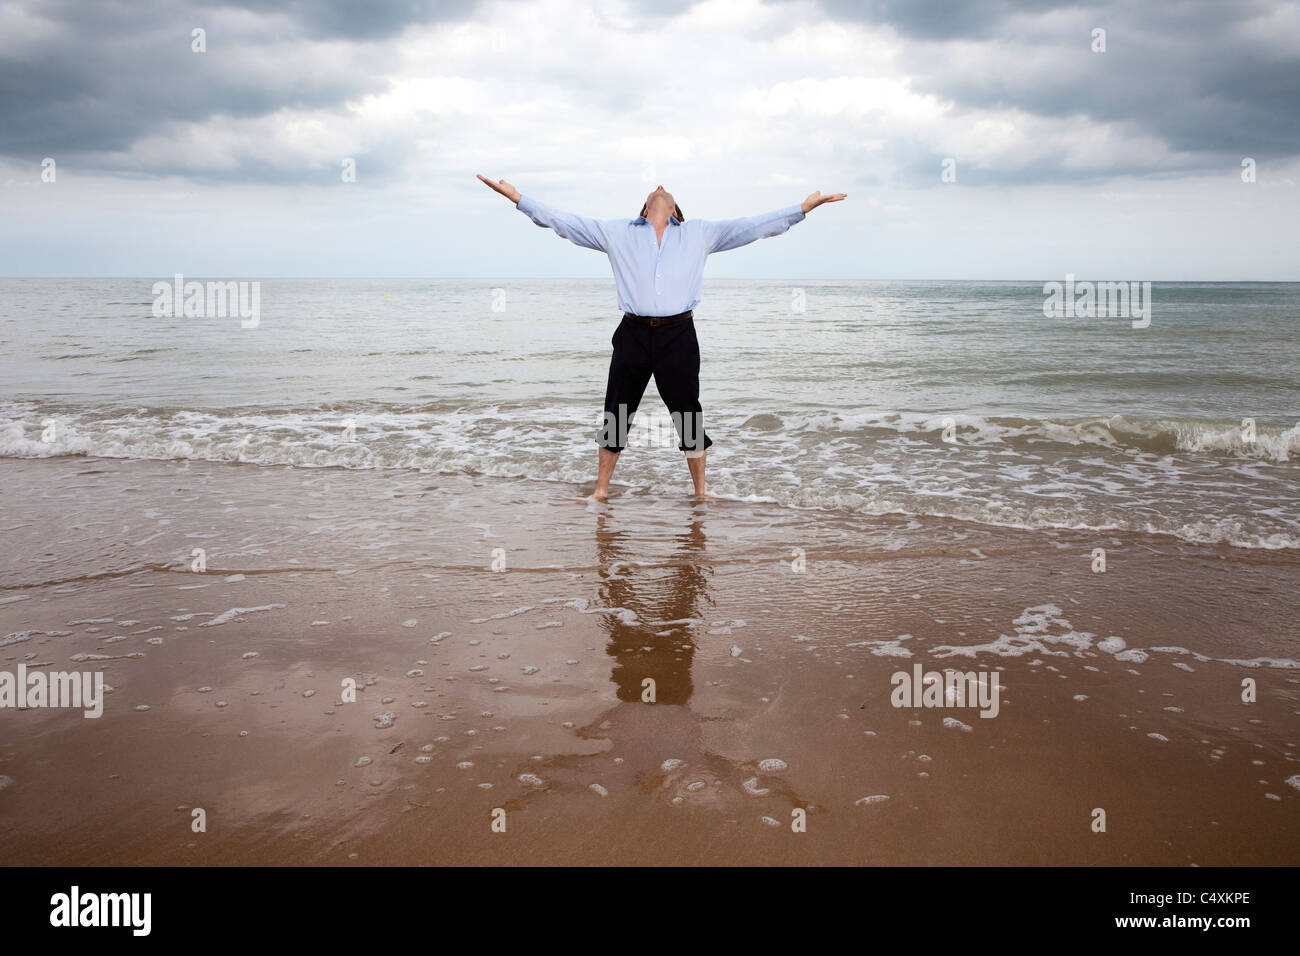 Fully clothed man standing in the sea with arms out looking to the sky. Stock Photo